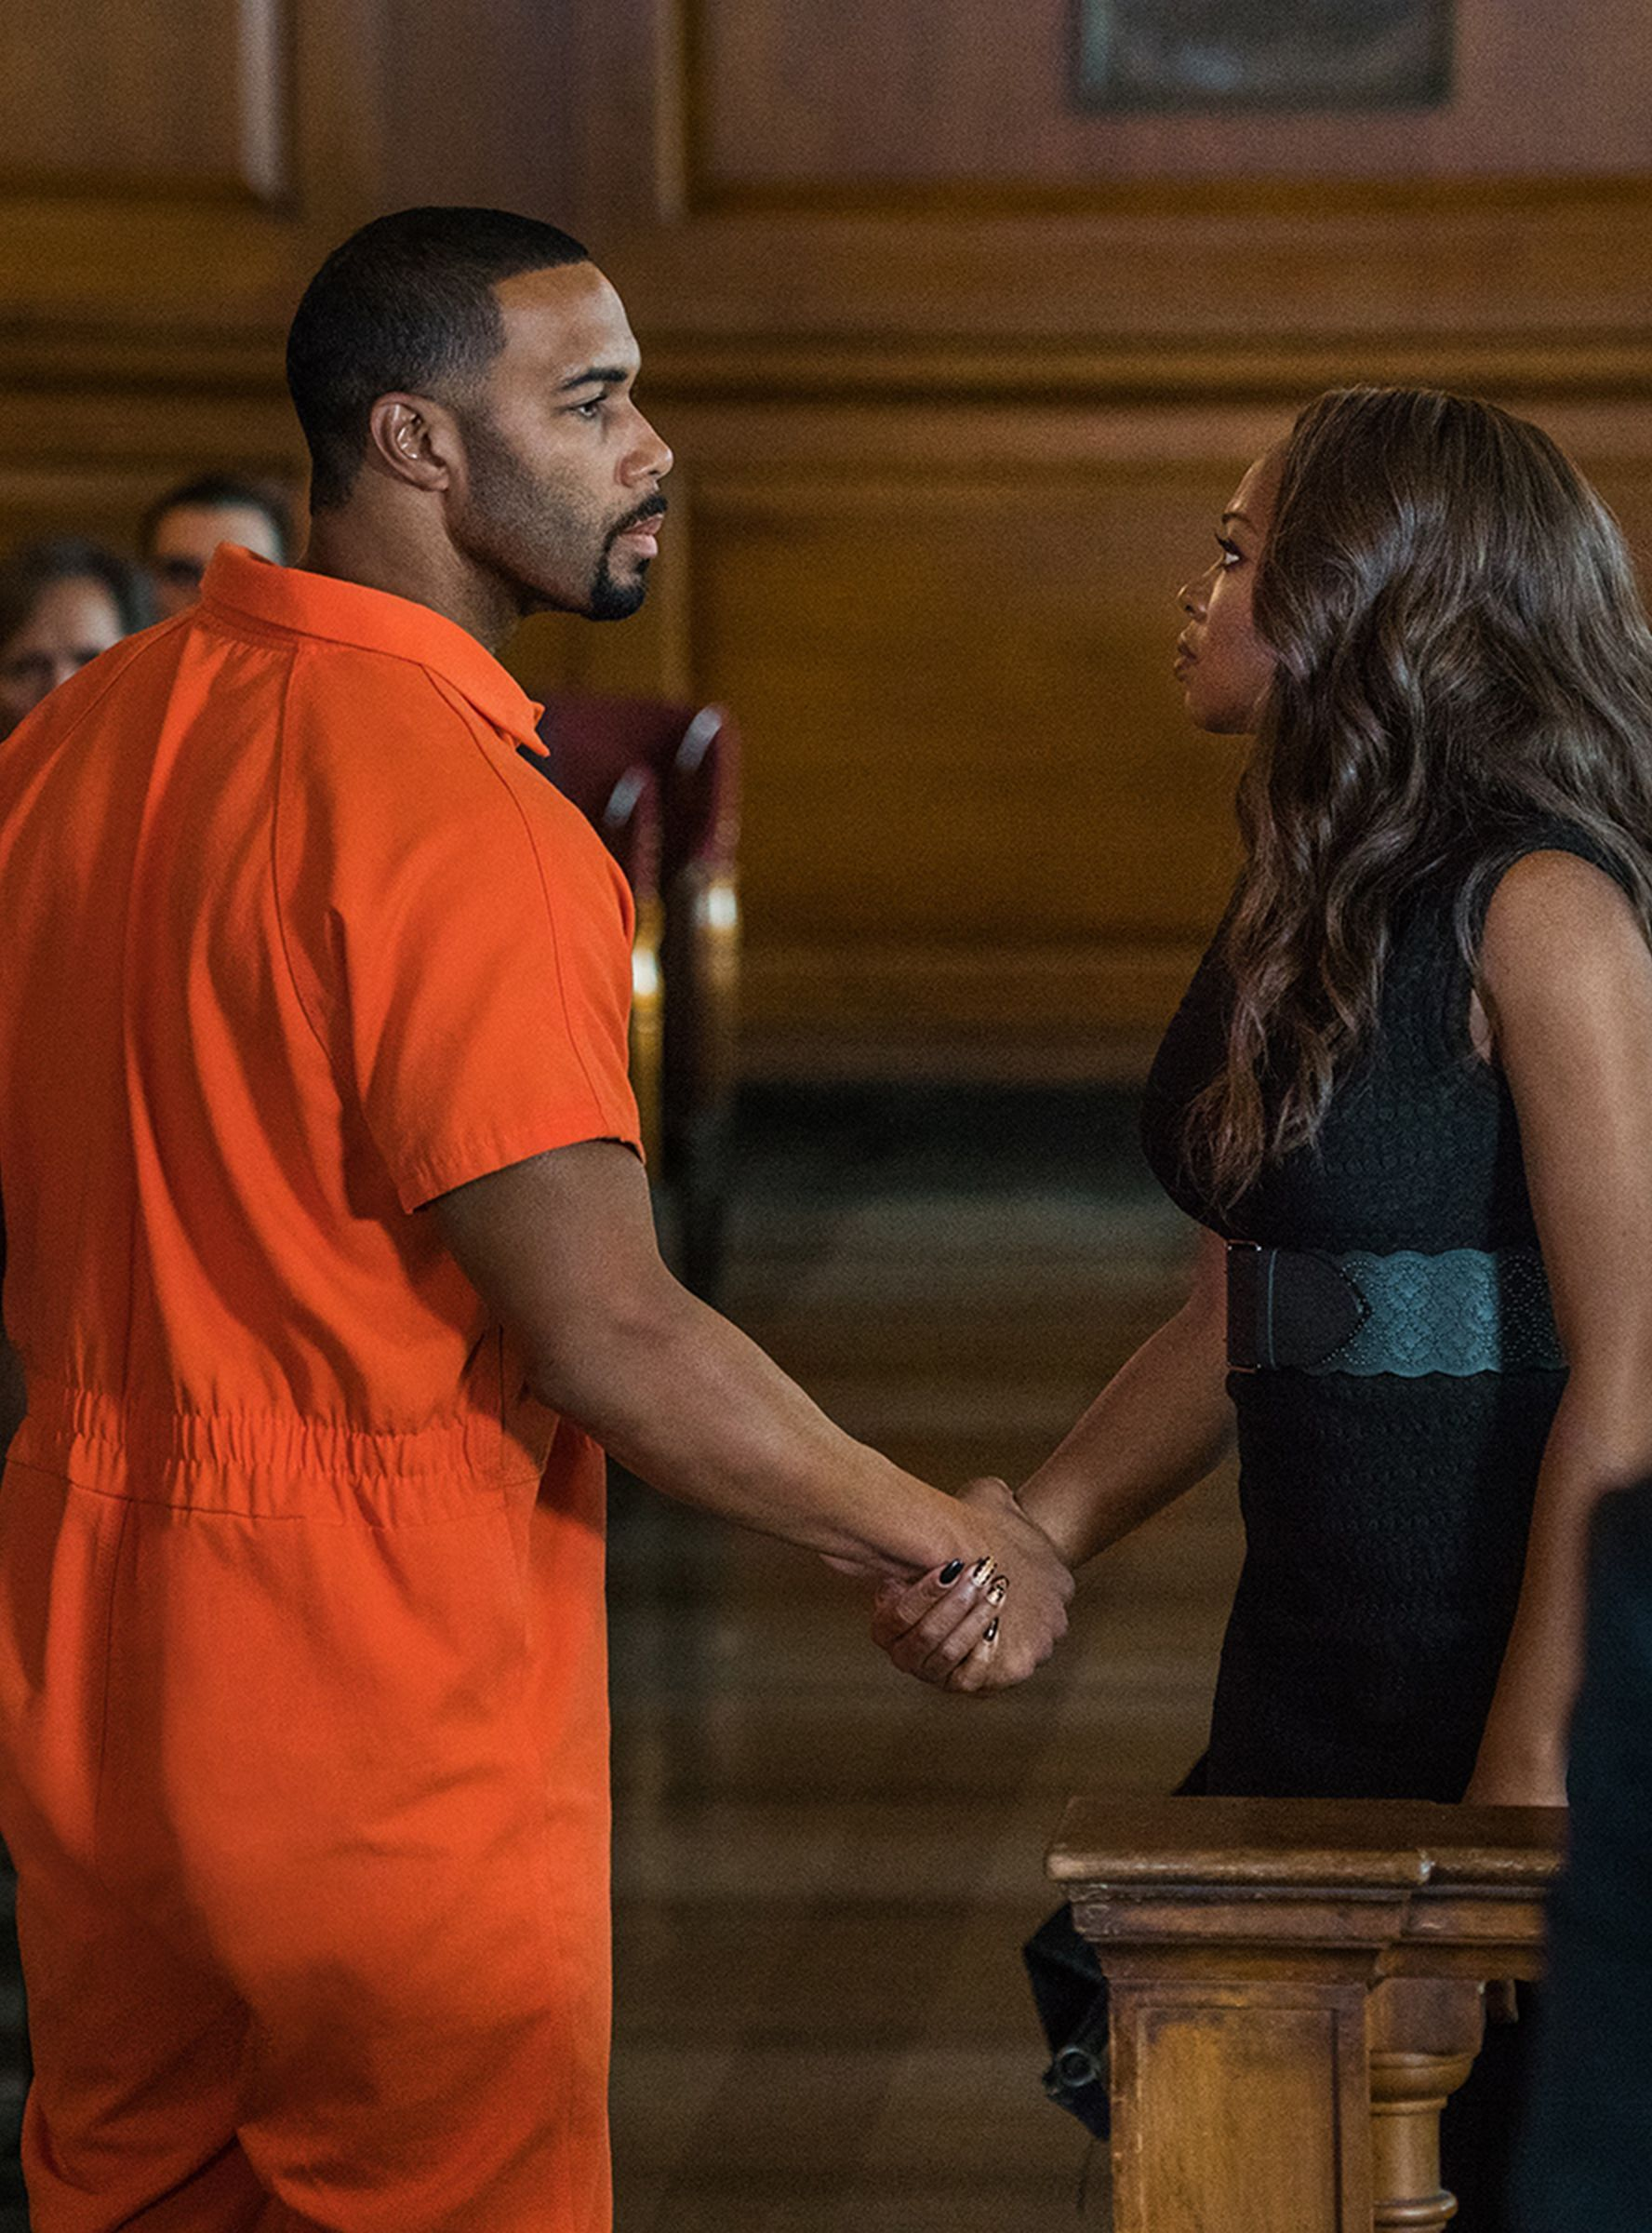 The Cast Of Power Philosophizes About Their Characters